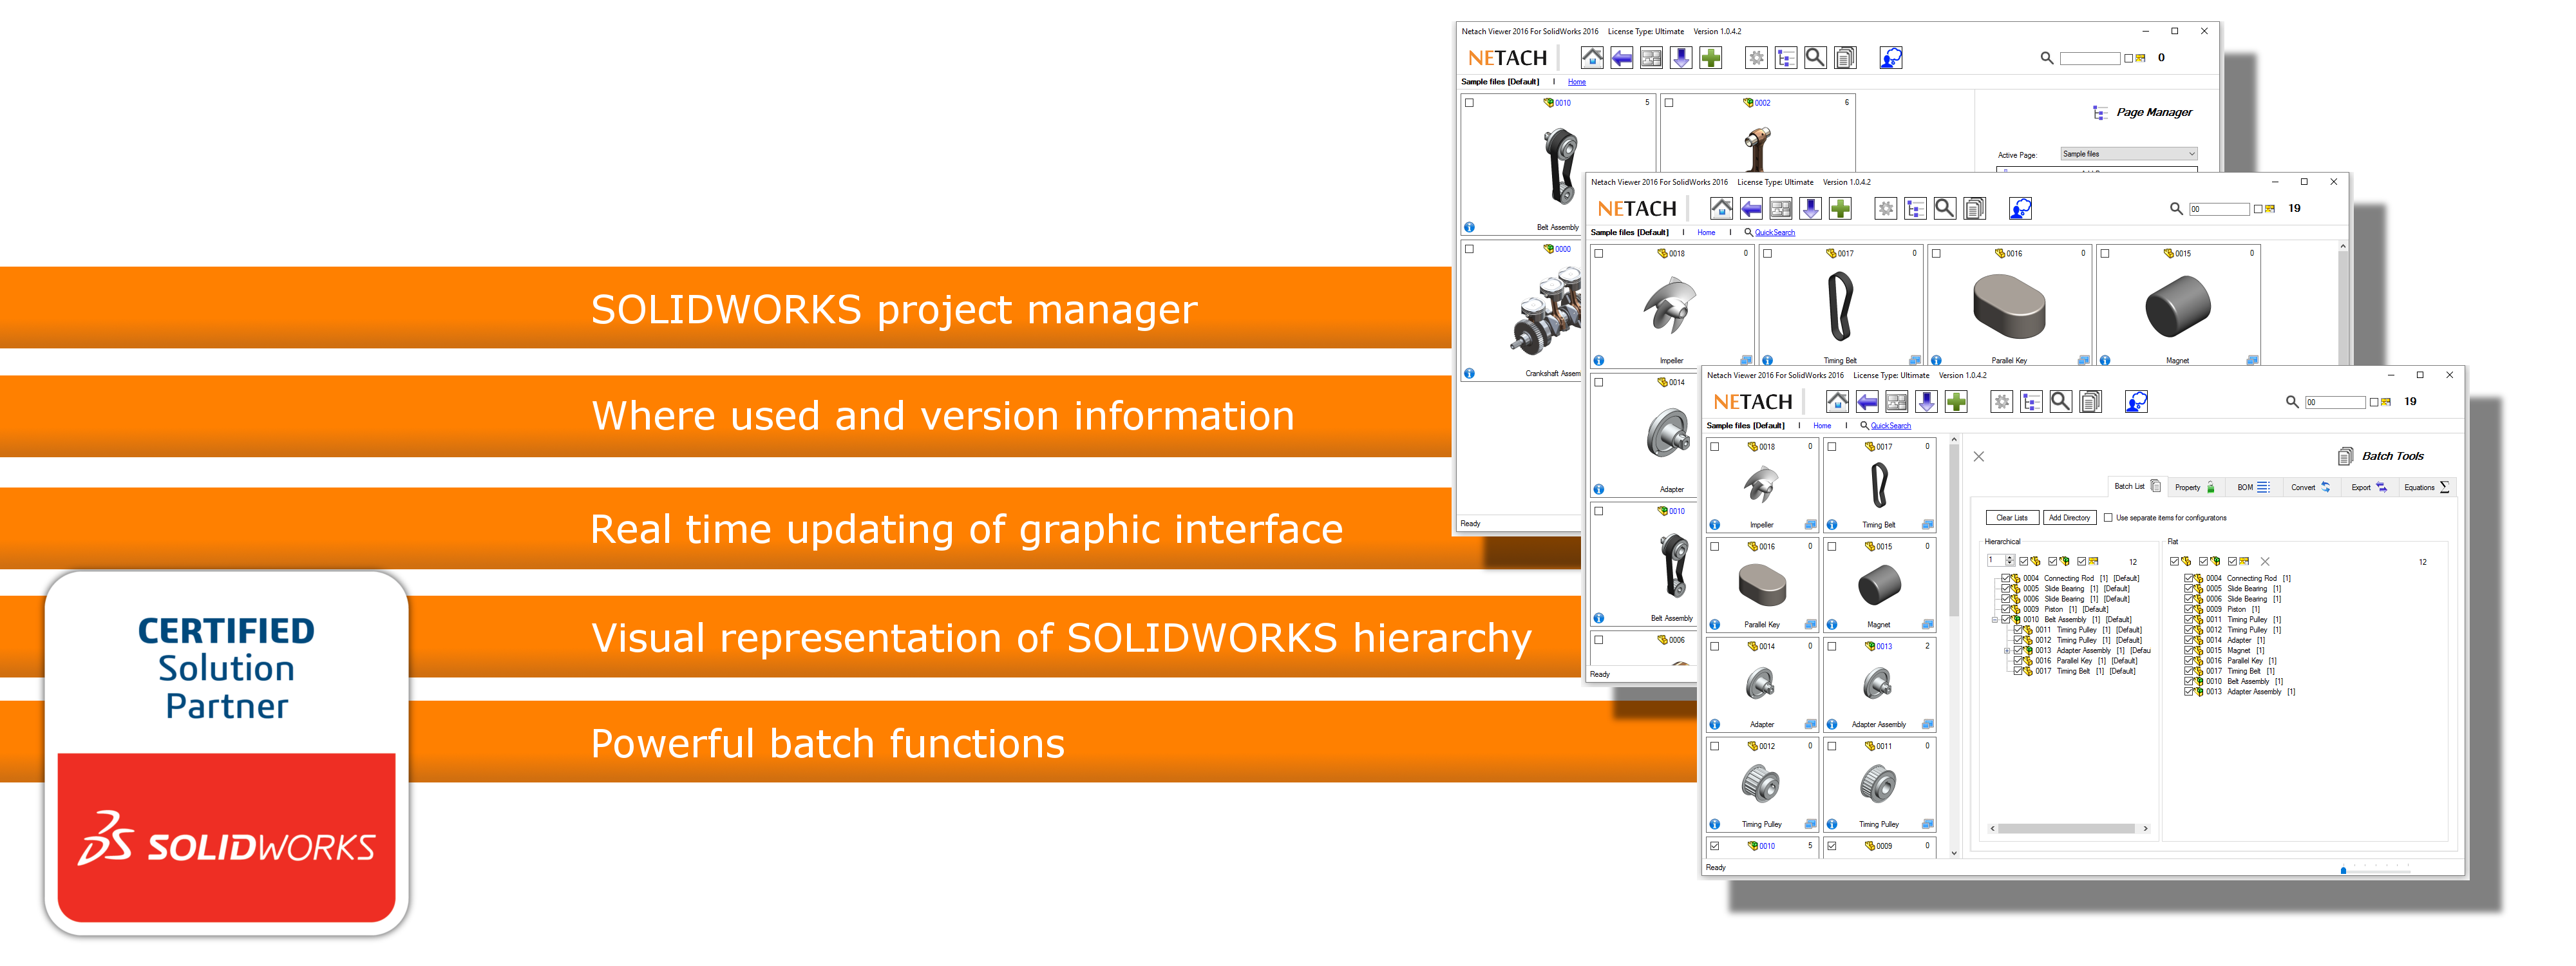 Netach Viewer 2017 SOLIDWORKS certified solution partner